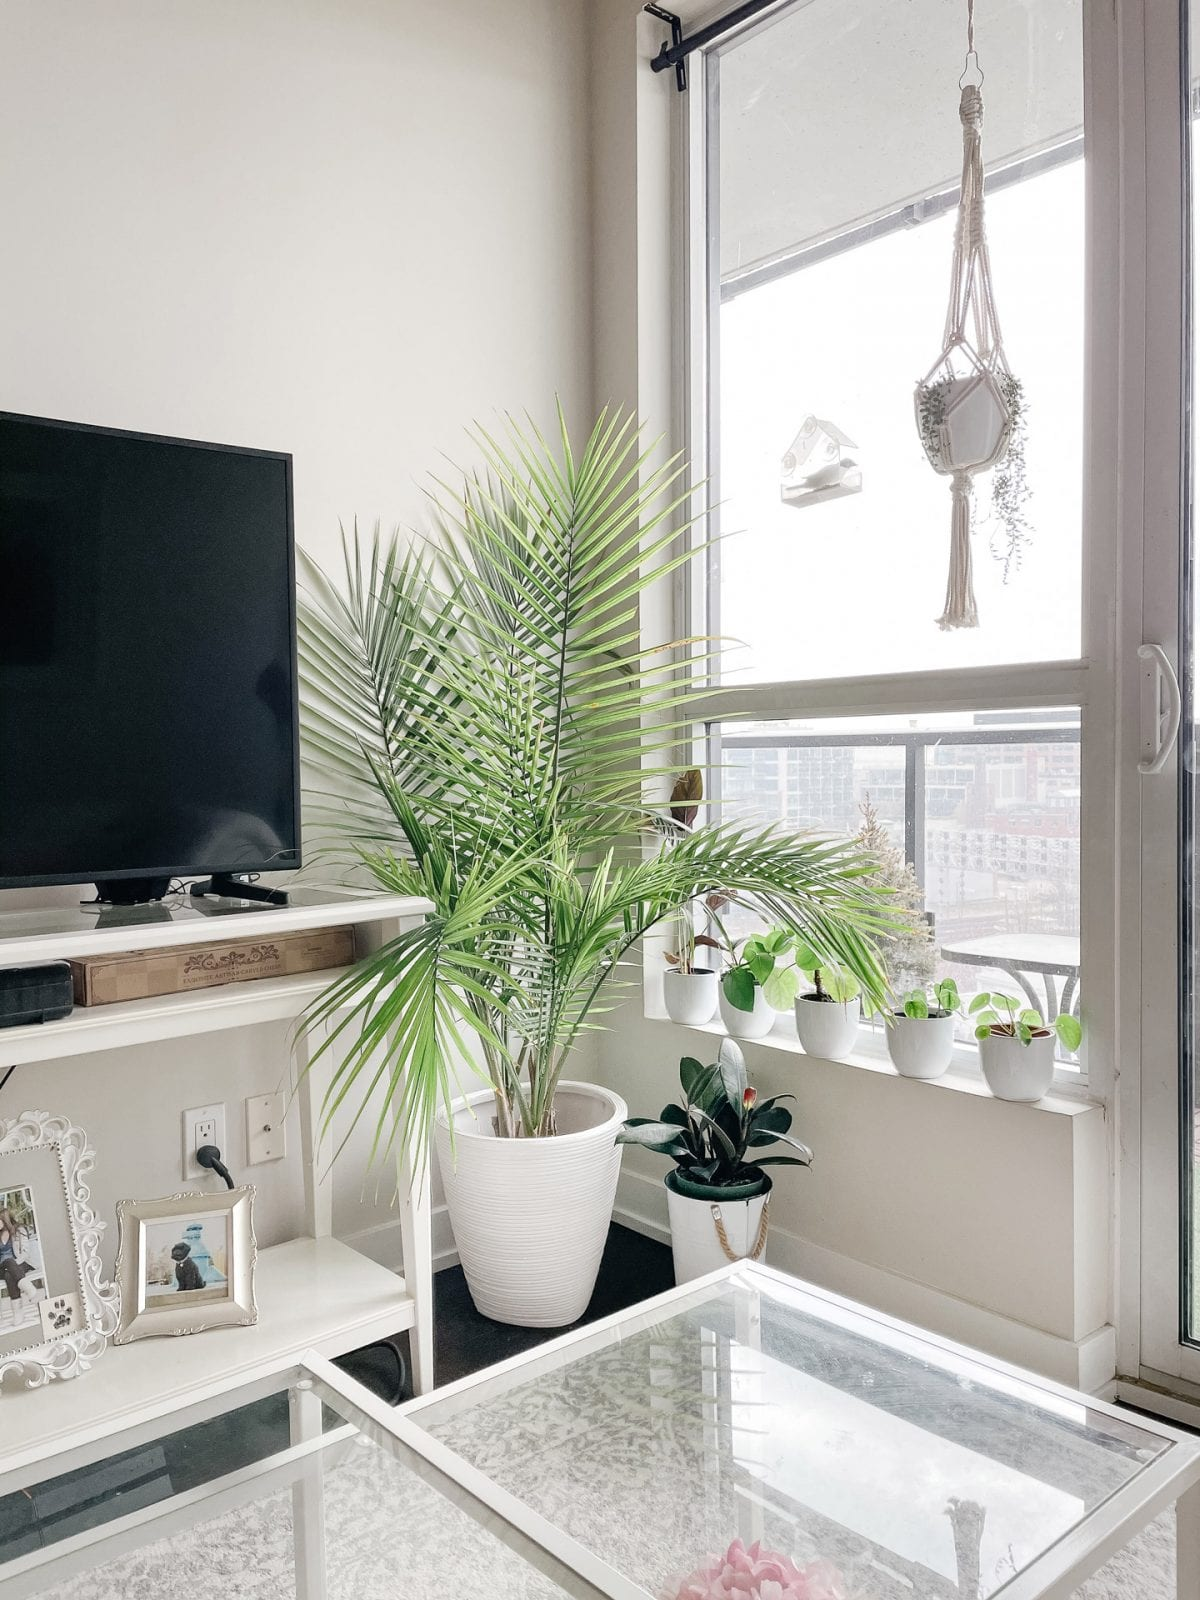 Downtown condo - plant corner with macrame hanging planter and potted plants